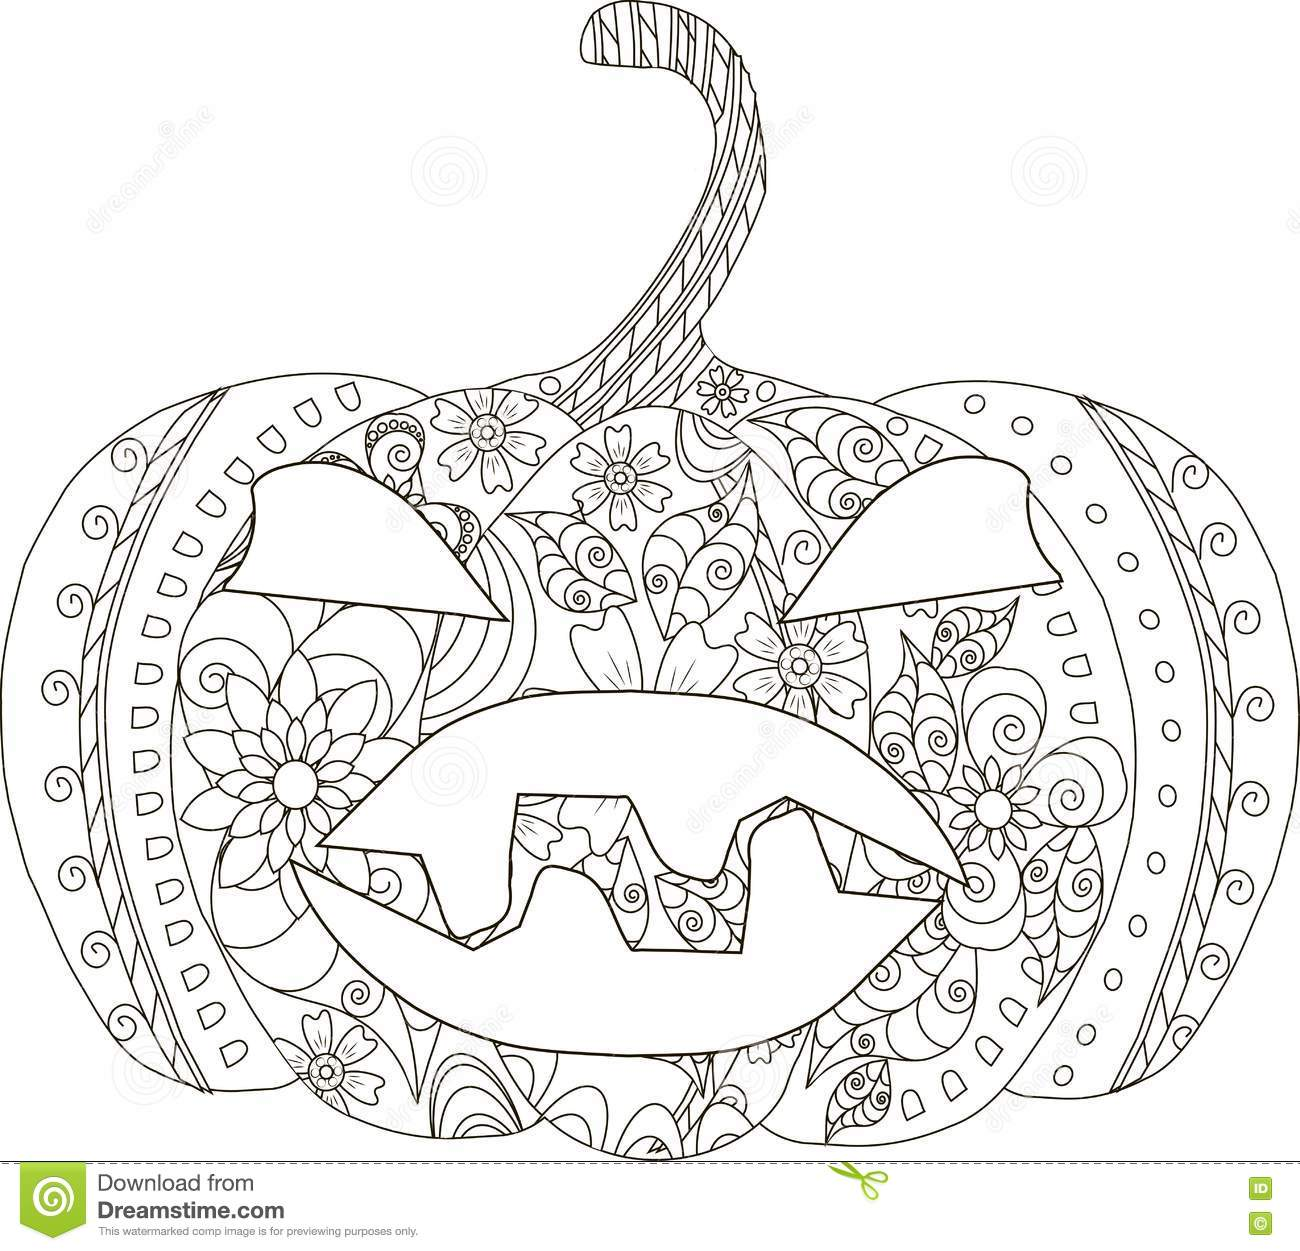 pumpkin sketch halloween thin line black ornament white coloring page anti stress vector illustration